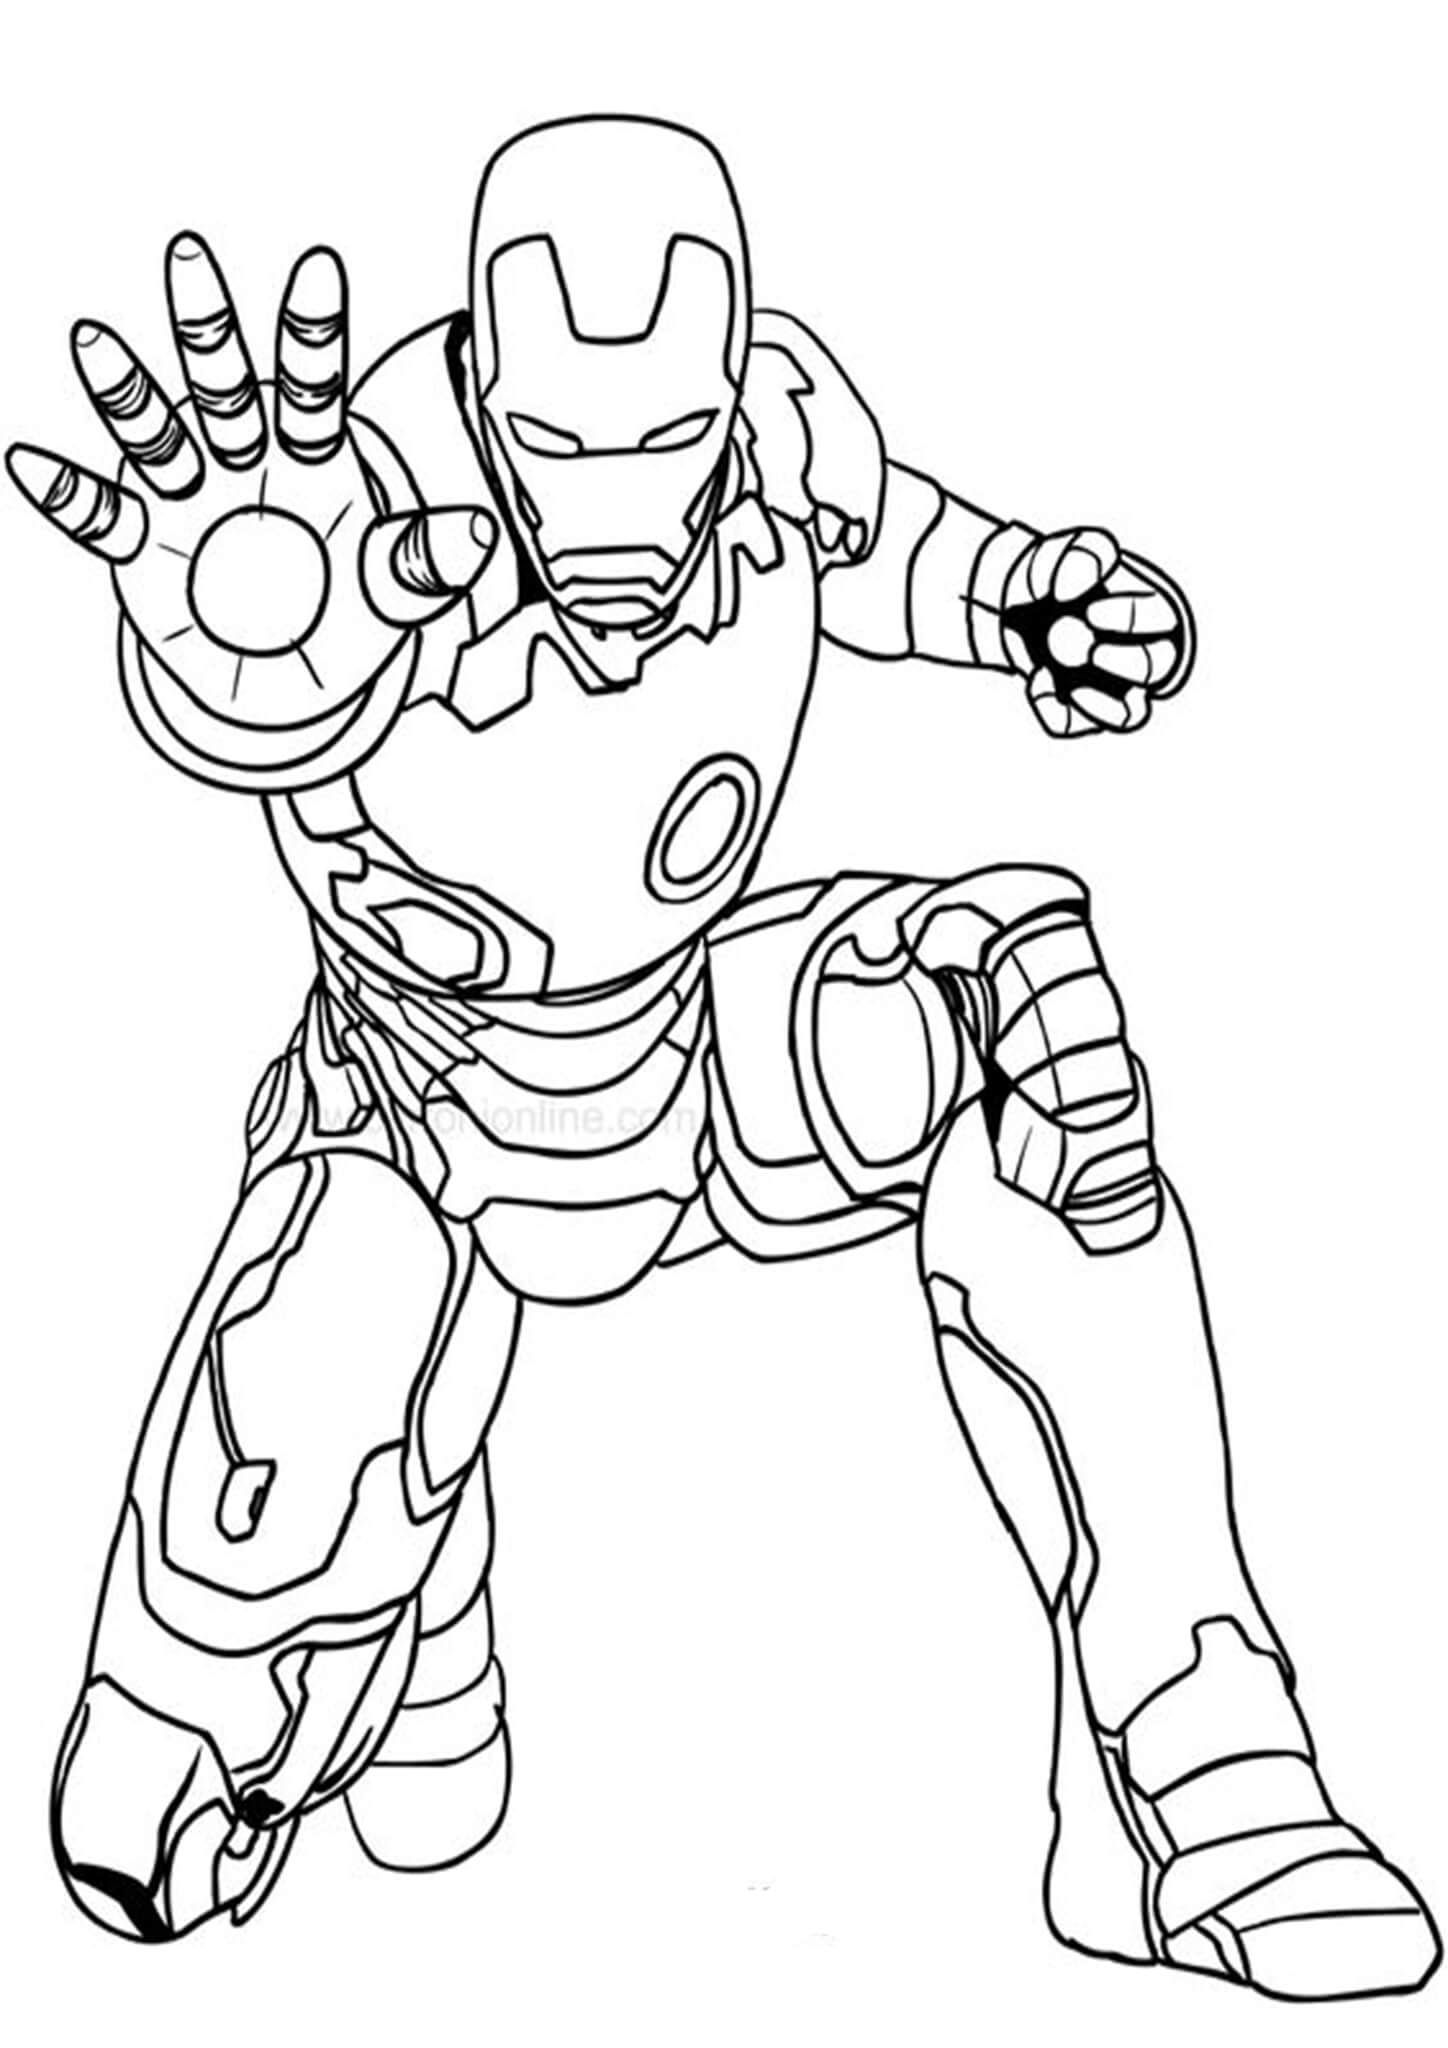 Free & Easy To Print Iron man Coloring Pages  Superhero coloring